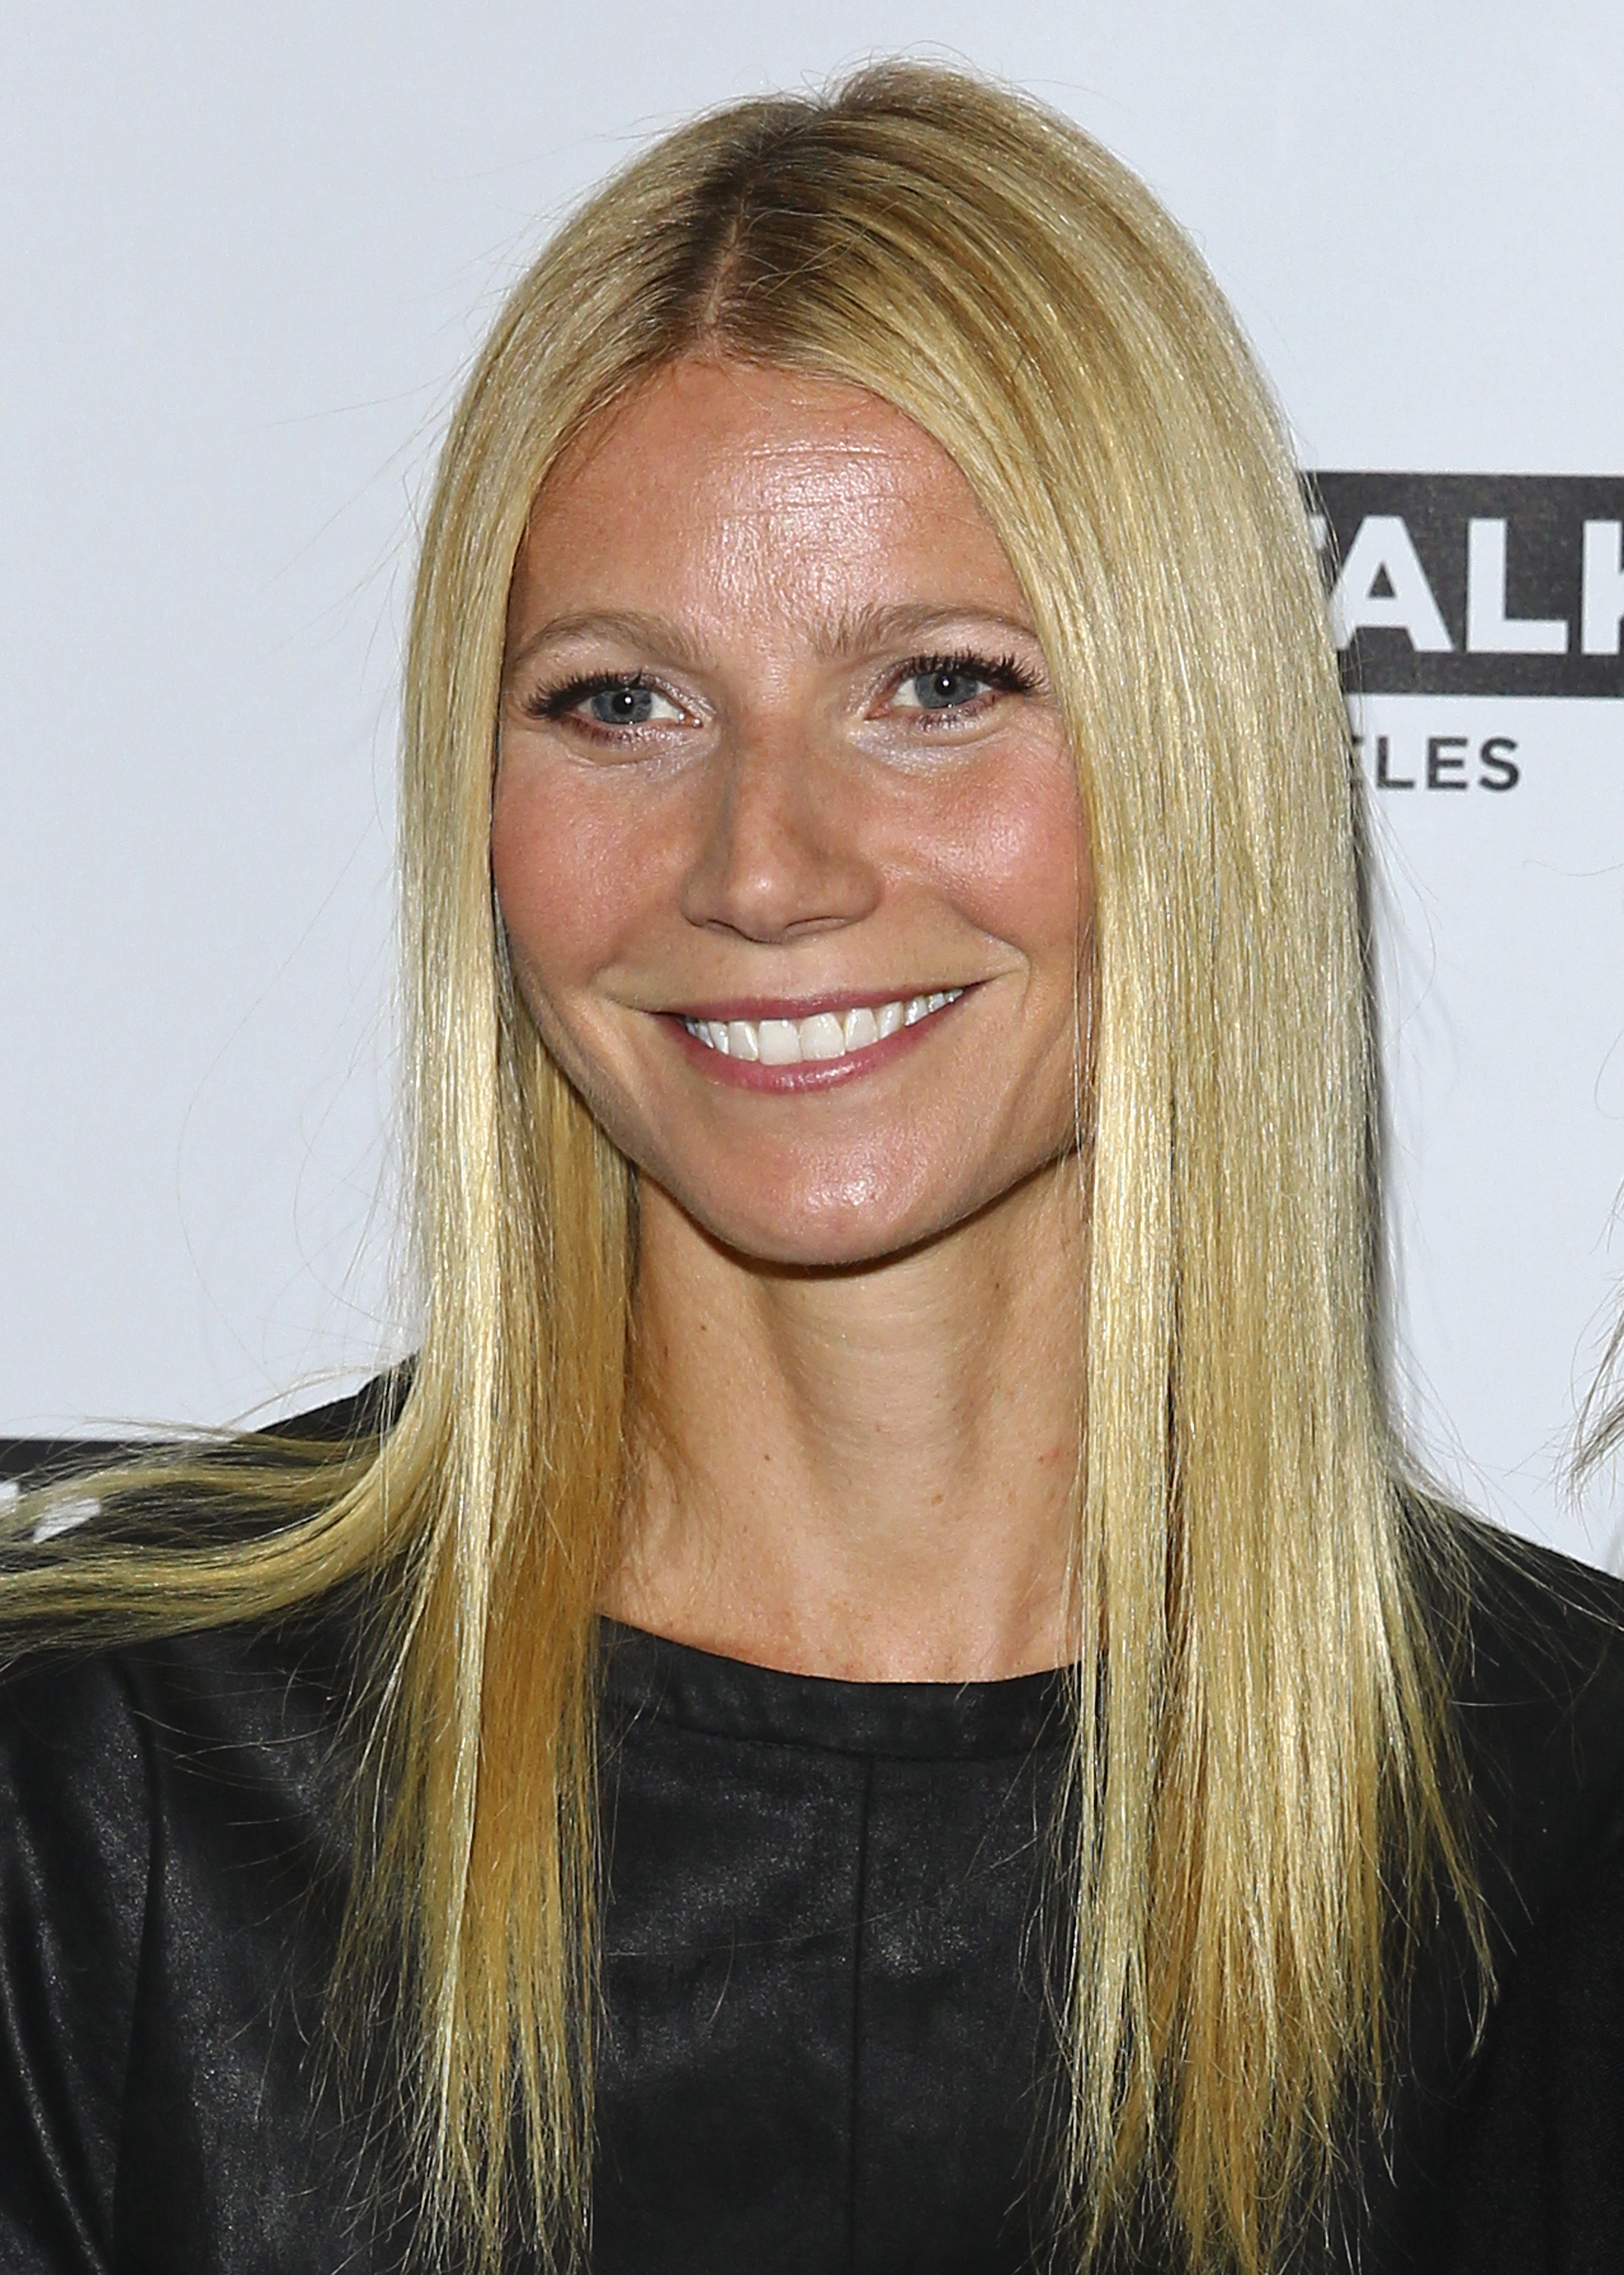 Gwyneth Paltrow attends An Evening With Chelsea Handler In Conversation with Gwyneth Paltrow at Alex Theatre on March 11, 2014 in Glendale, California.